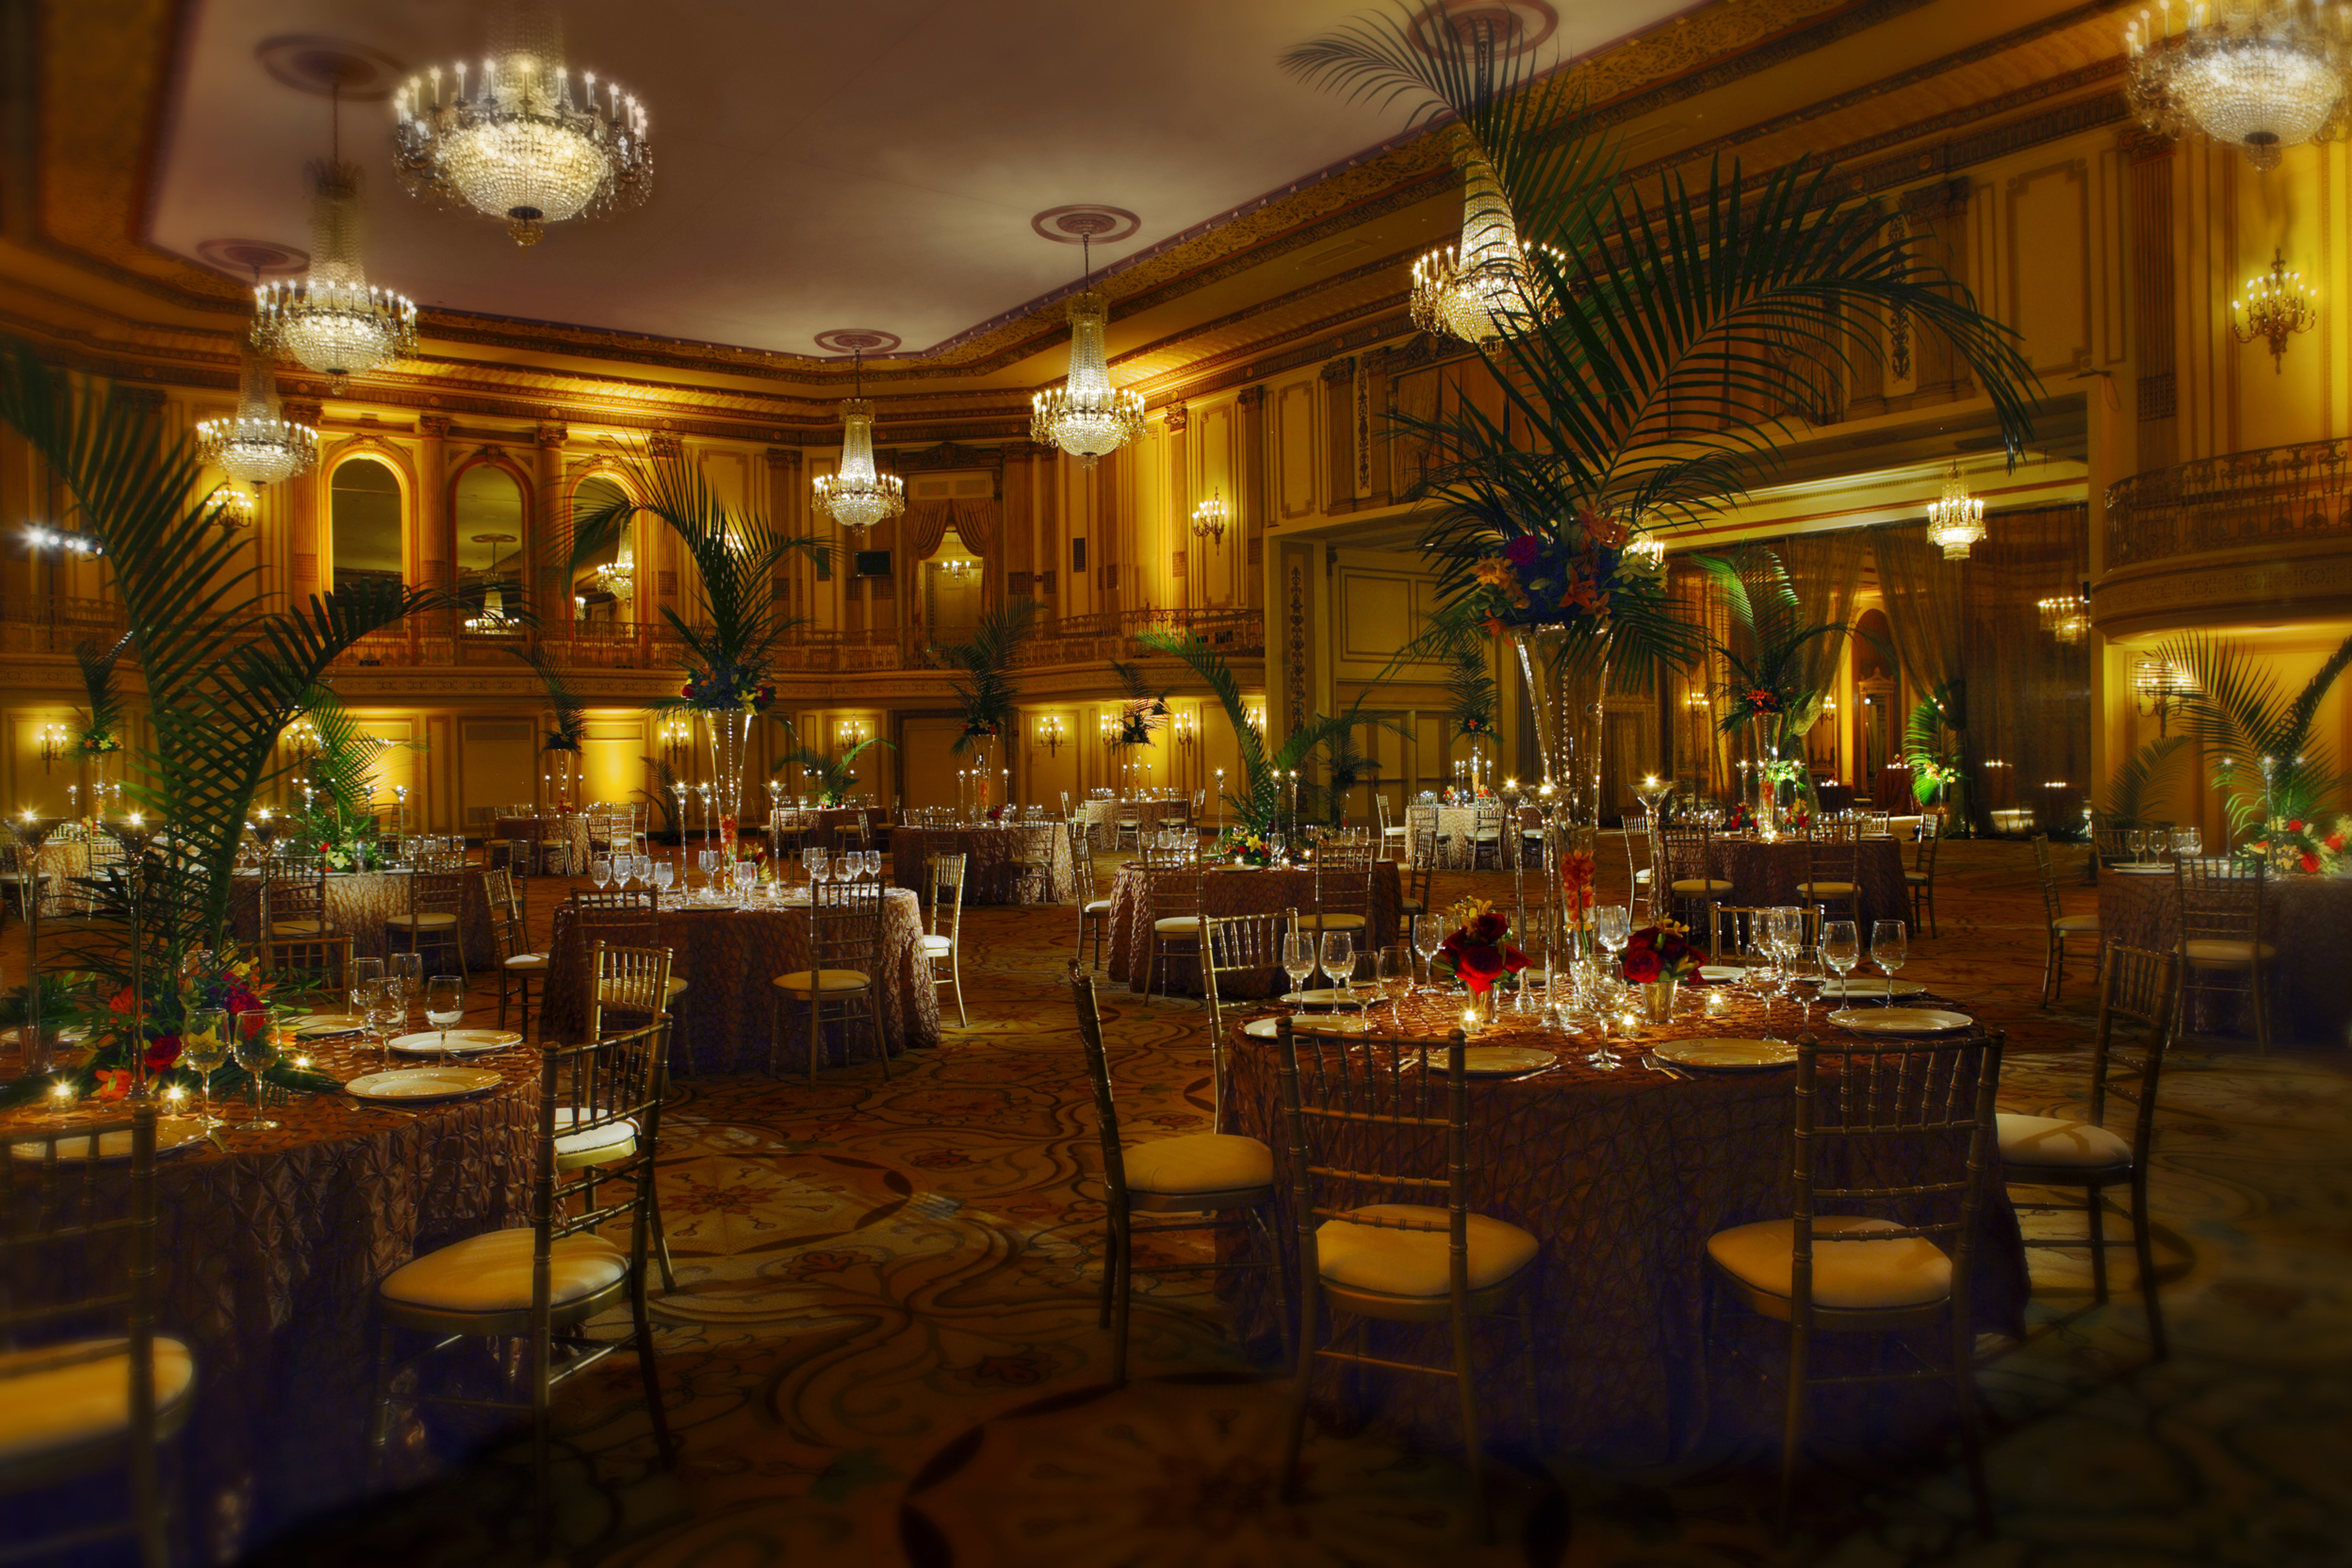 Image Library - Palmer House